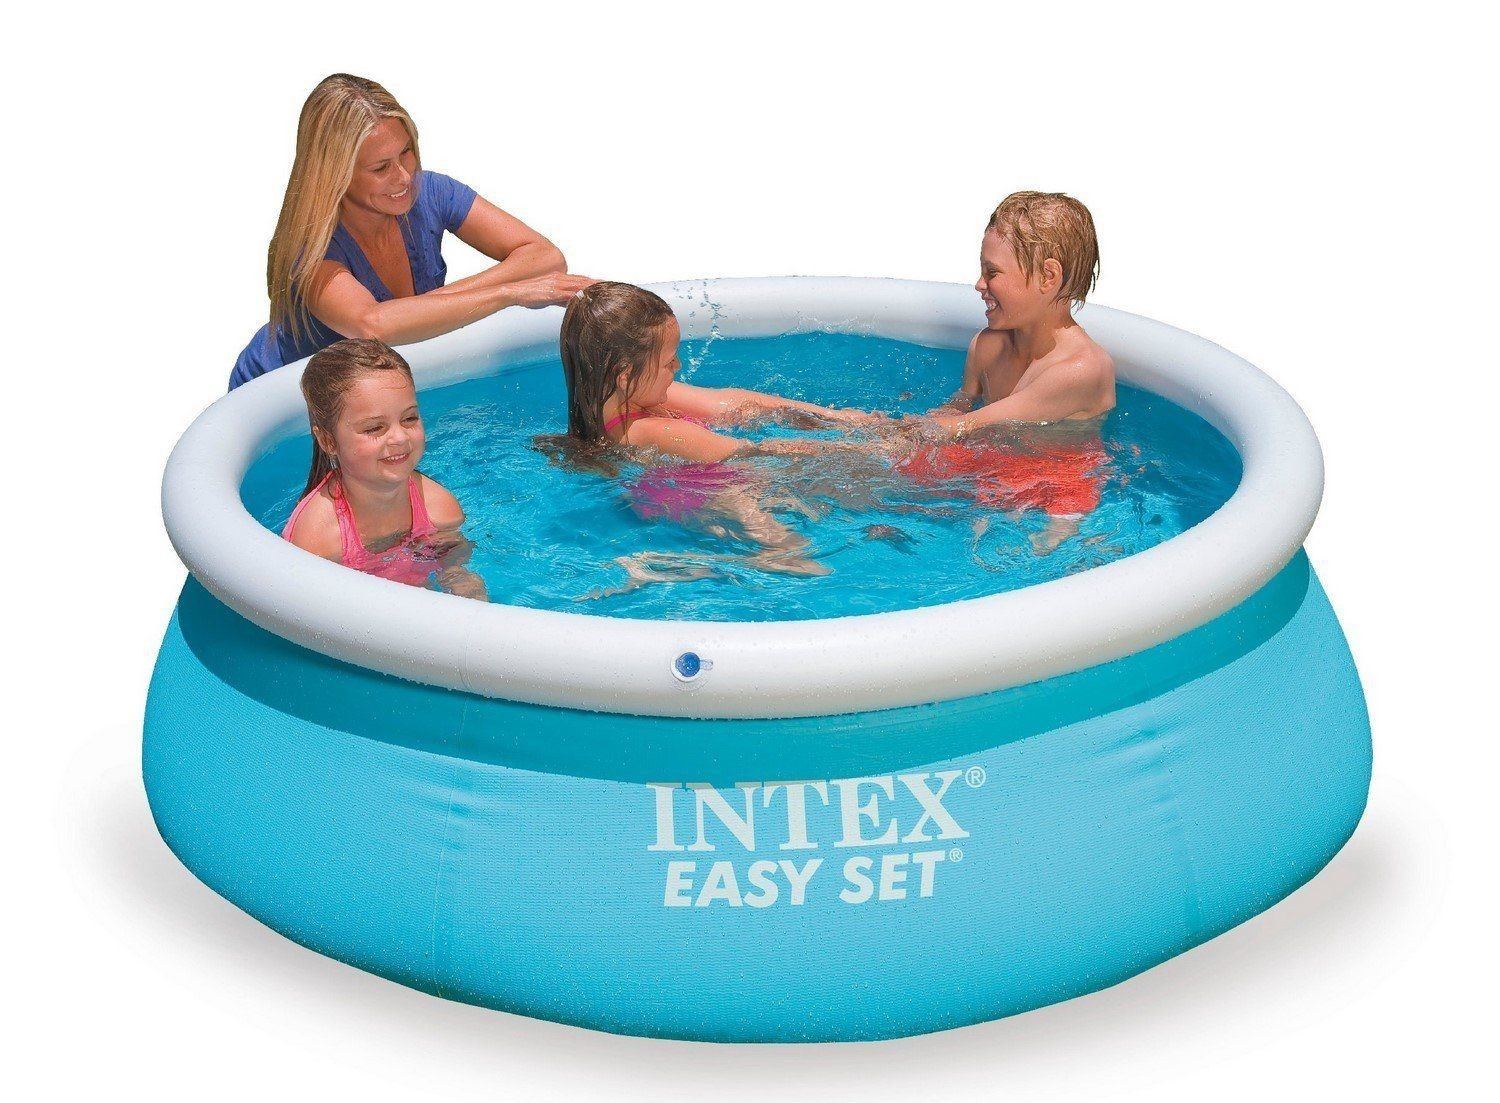 Piscina Intex Rotonda Intex 28101 Piscina My First Easy Rotonda Tonda 183 X 51